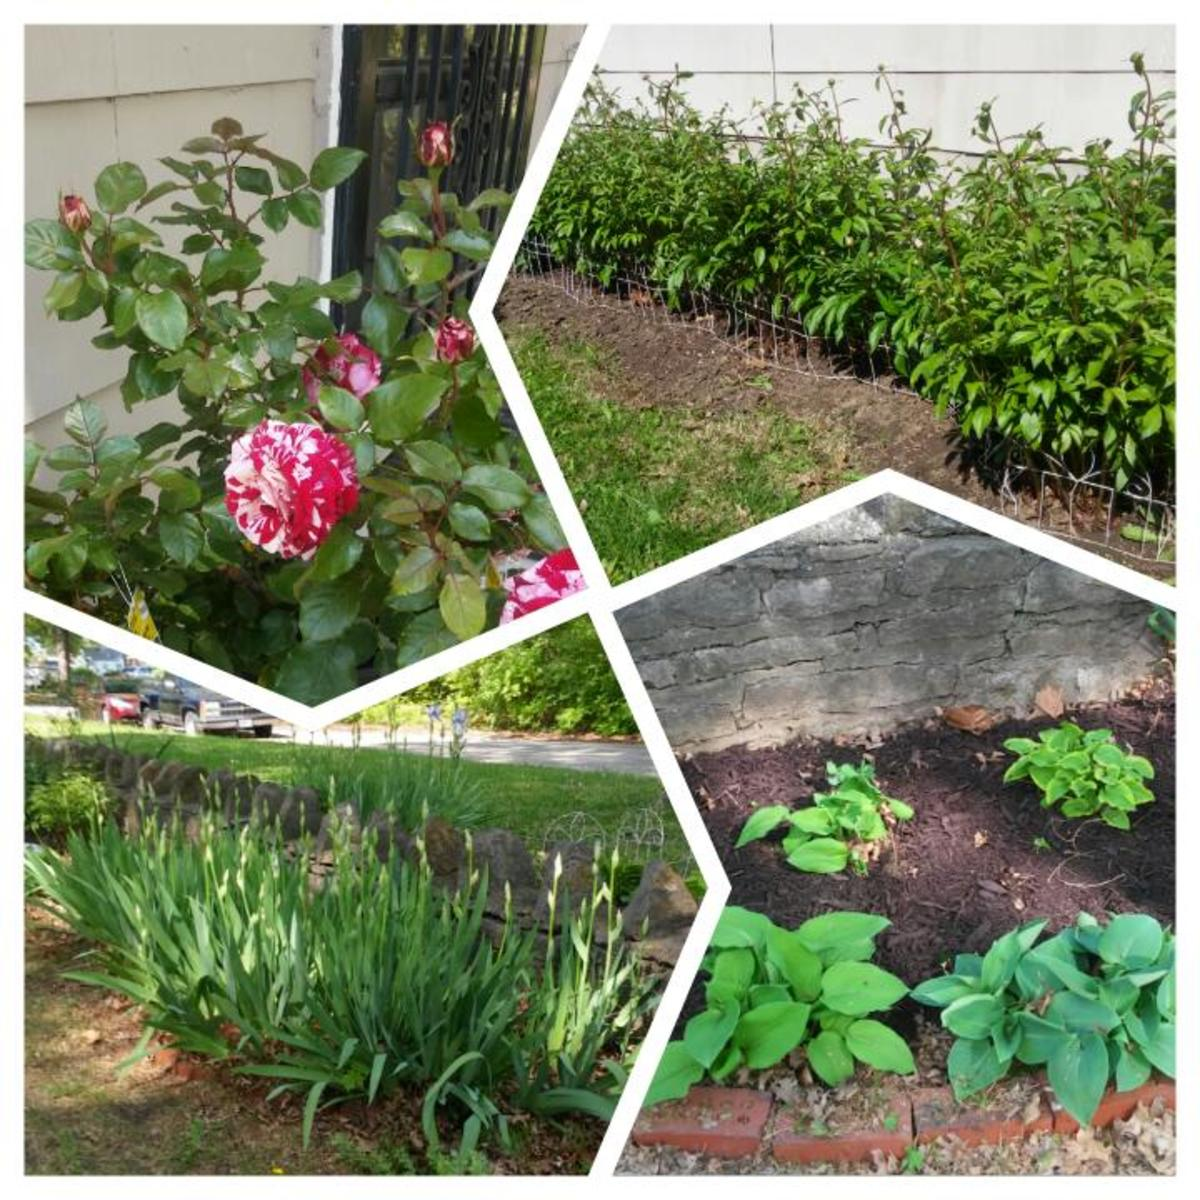 Flower beds in the front and side yards.